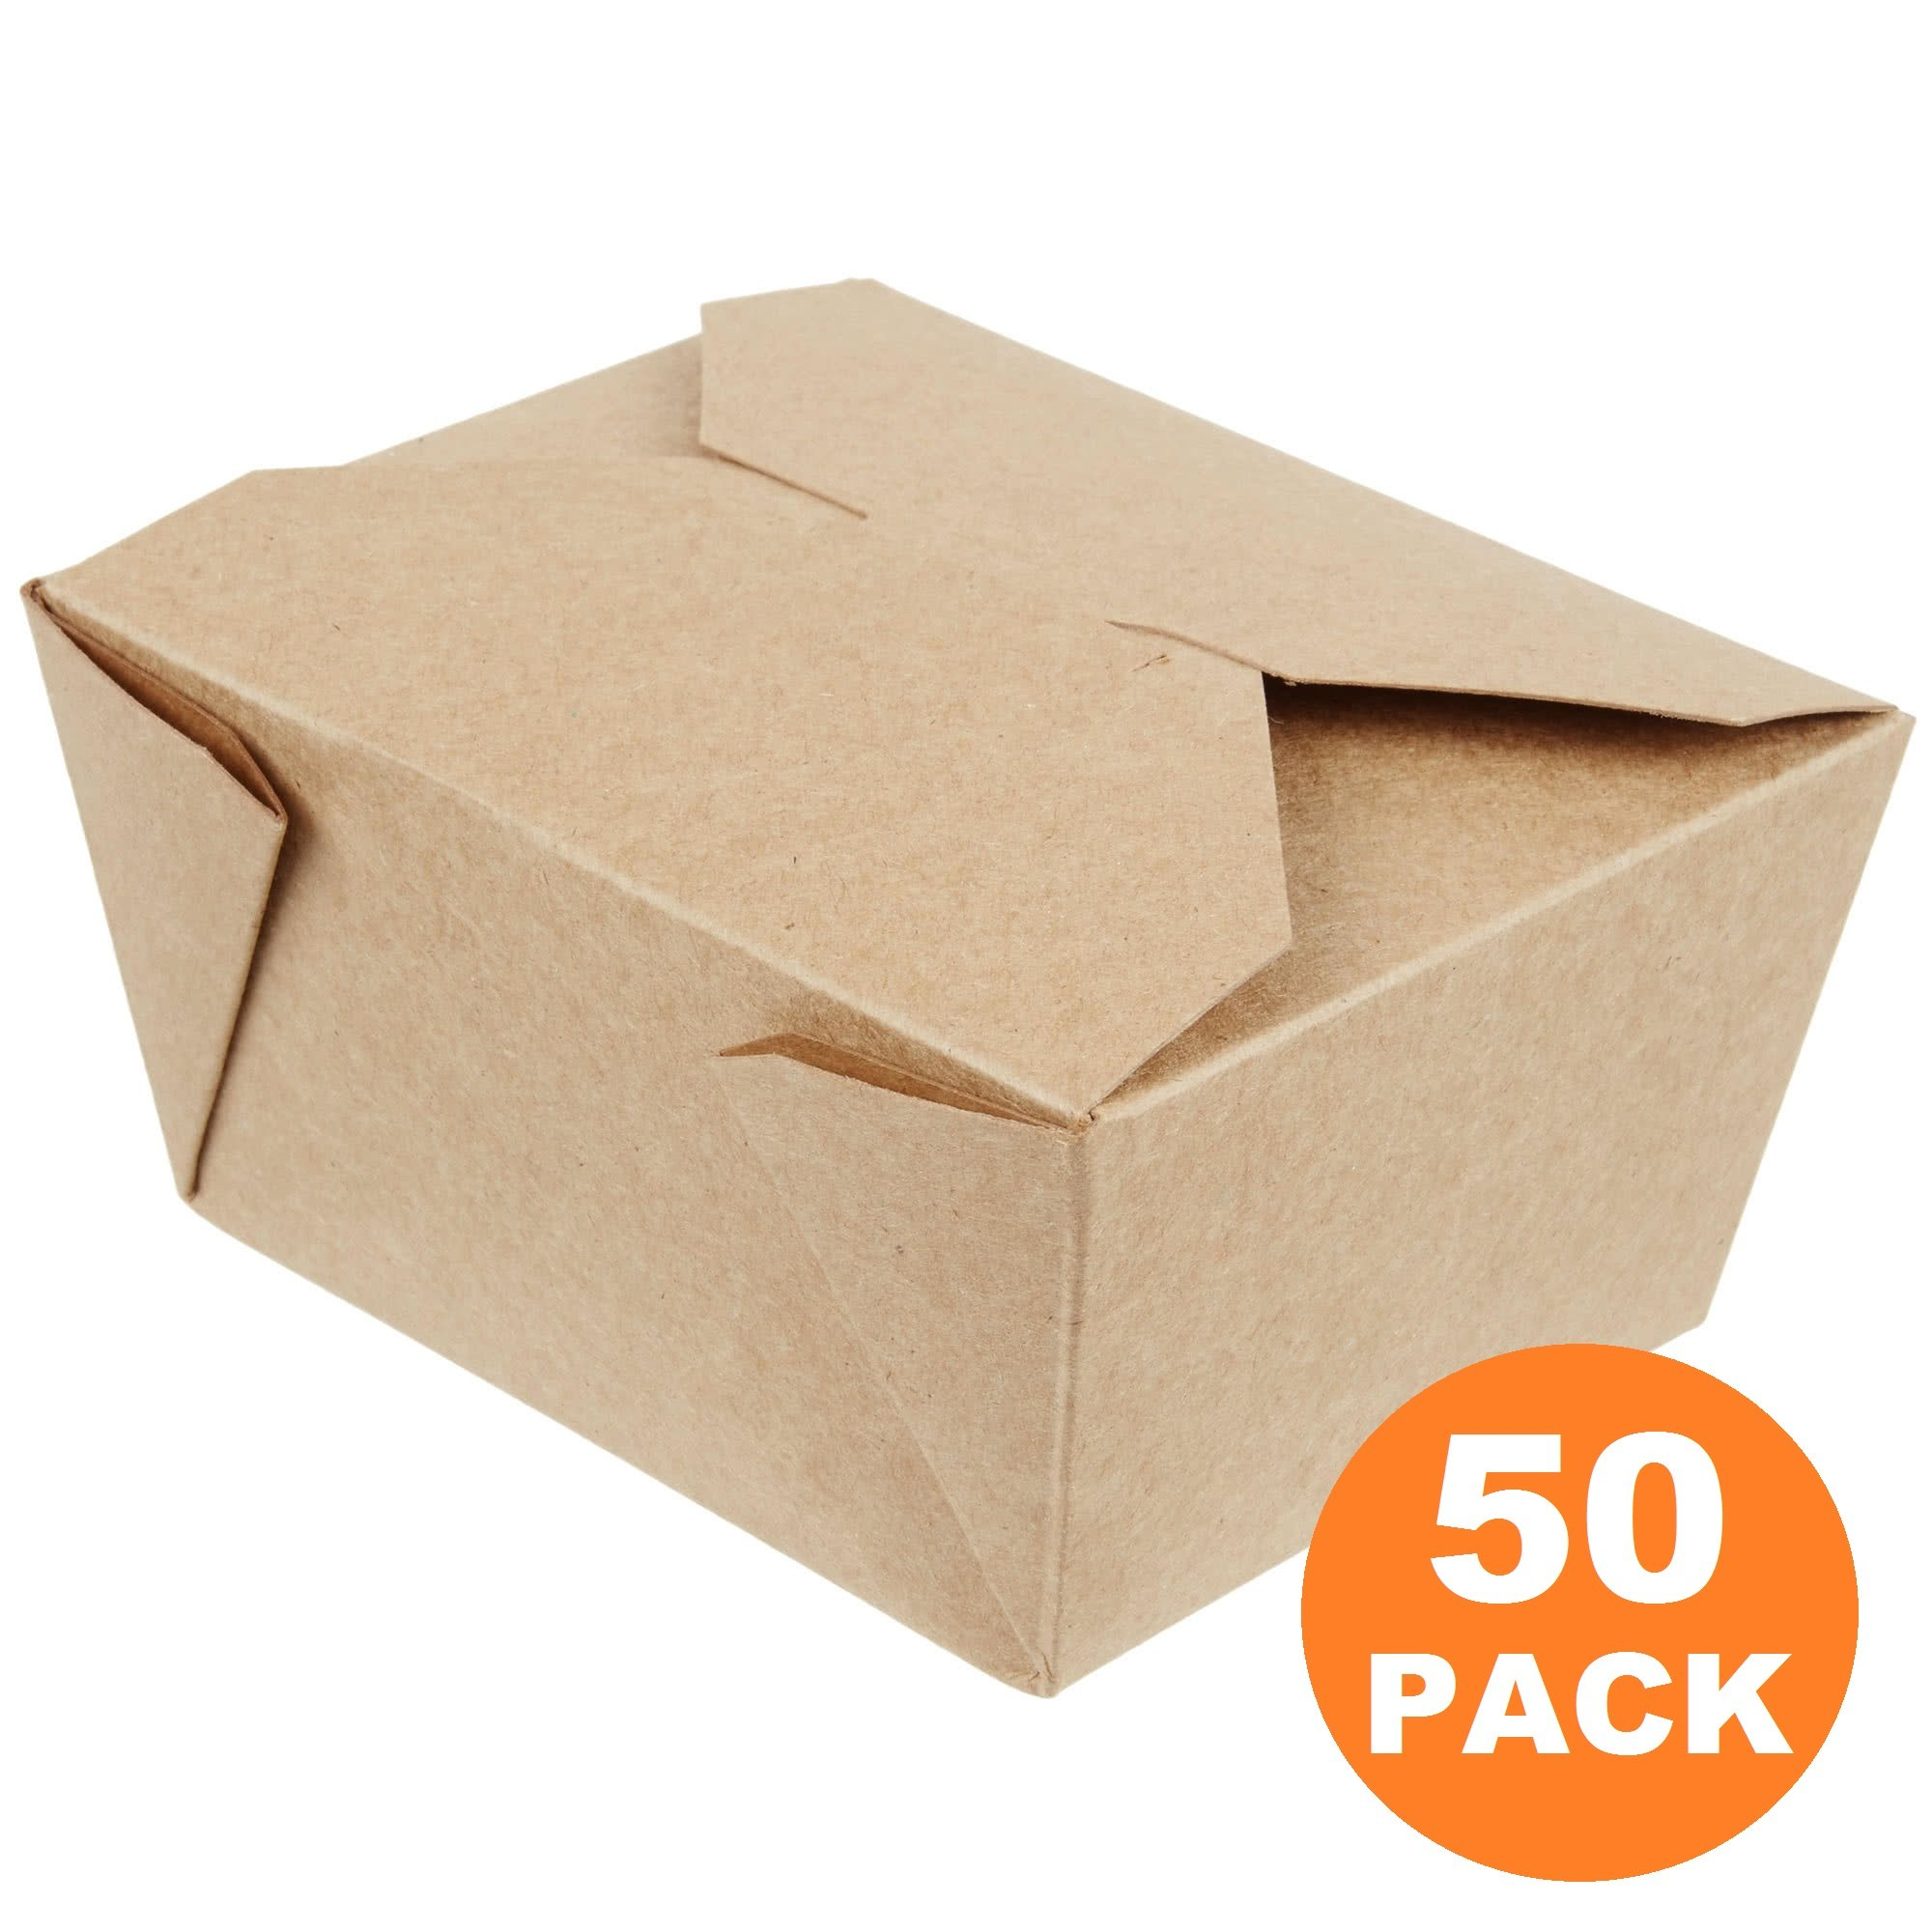 30 OZ 5 x 4.5 x 2.5'' Disposable Paper Take Out Food Containers, Microwaveble Folding Natural Kraft To Go Boxes #1 [50 Pack]